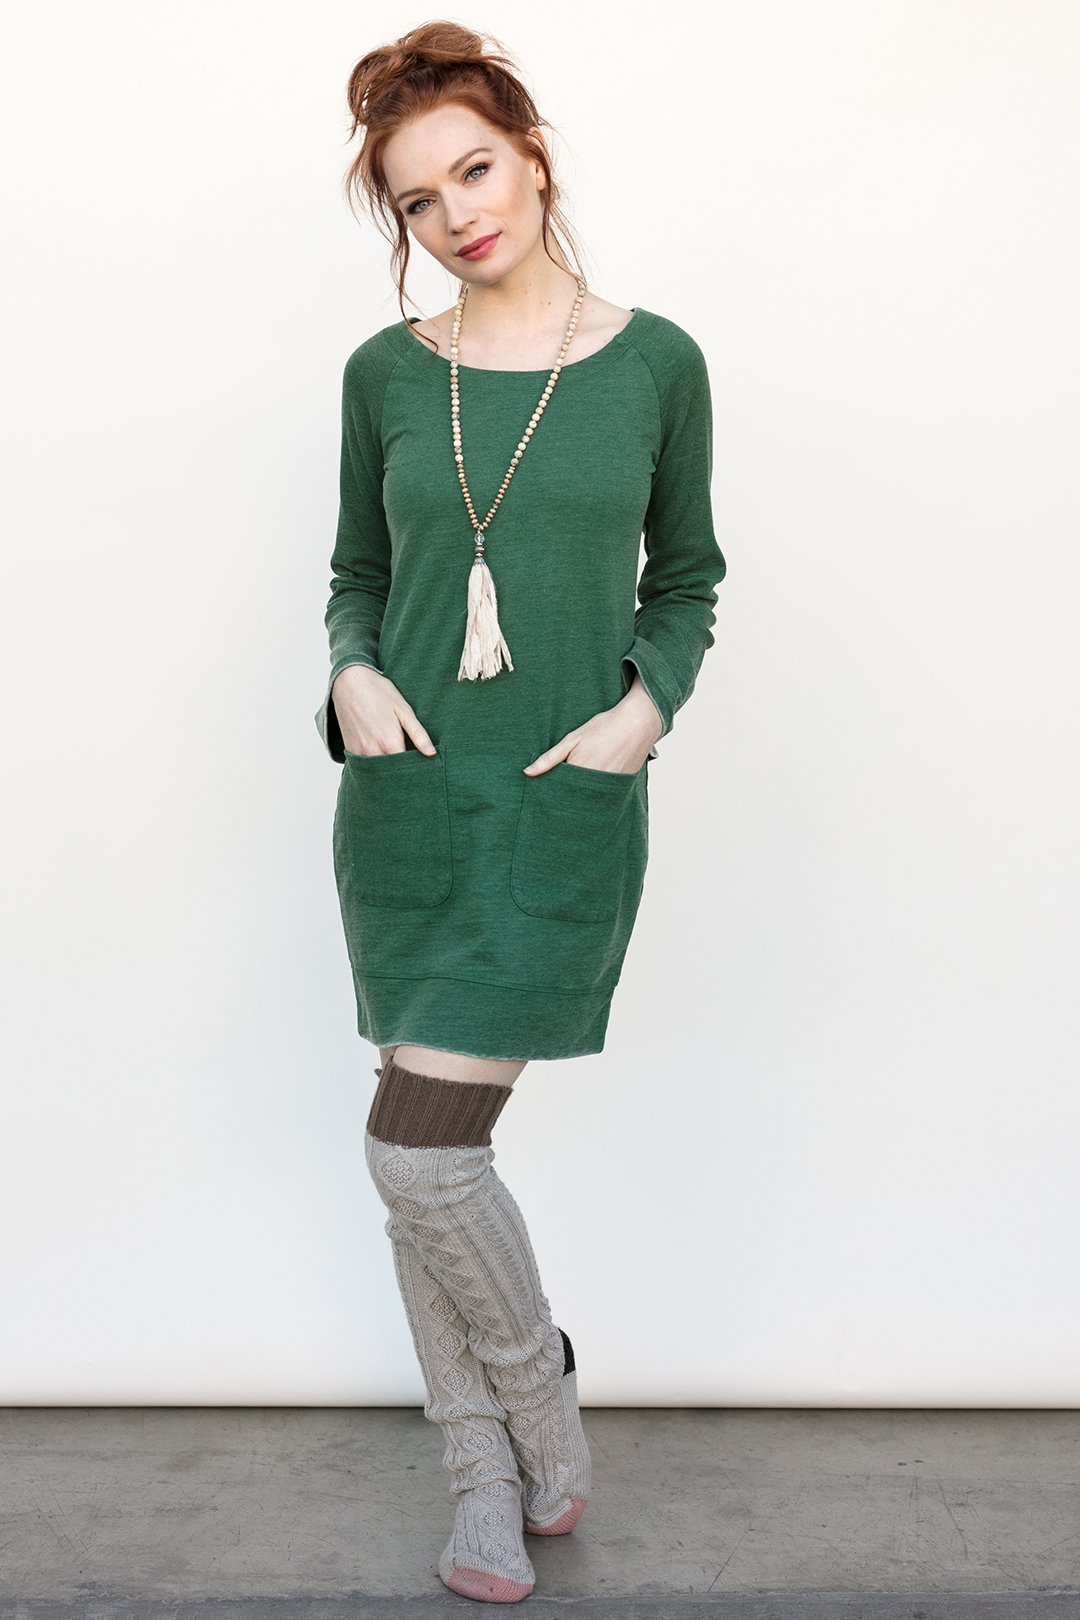 Get Mistletoe Ready in Your Brooke Tunic in Juniper - Evy's Tree blog